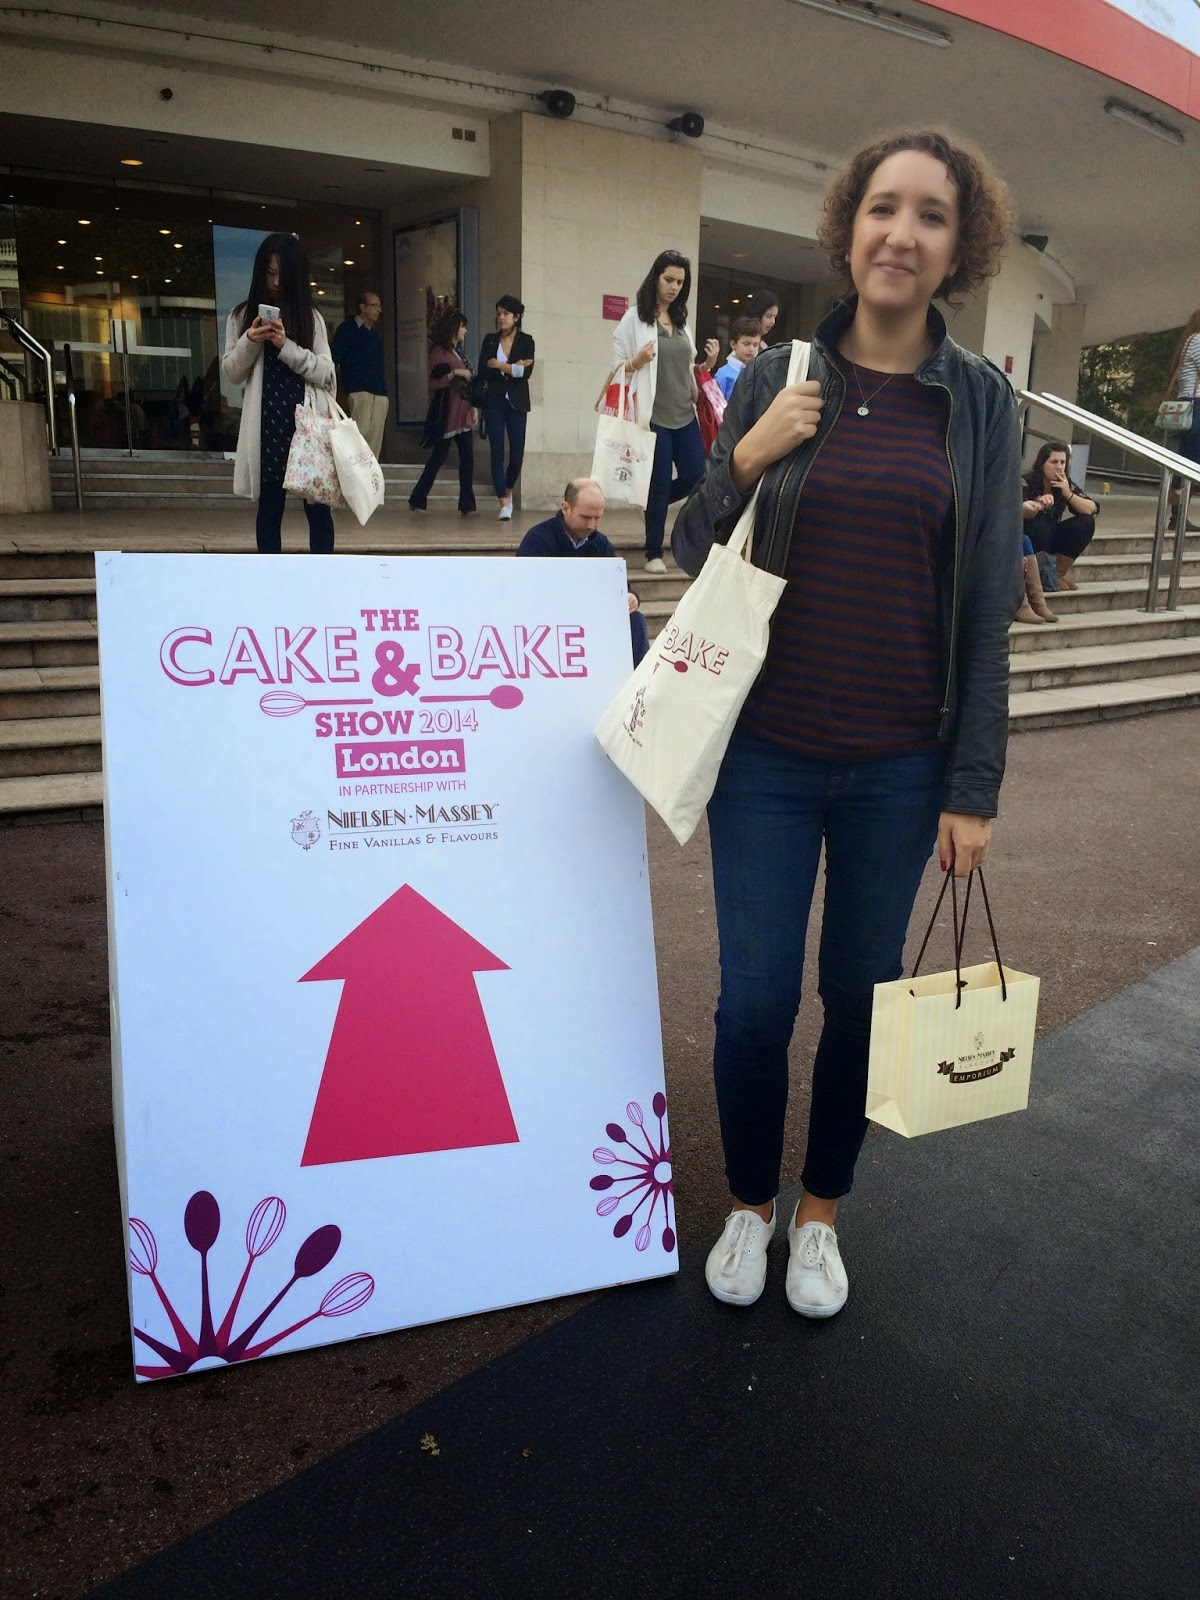 cake and bake show london 2014